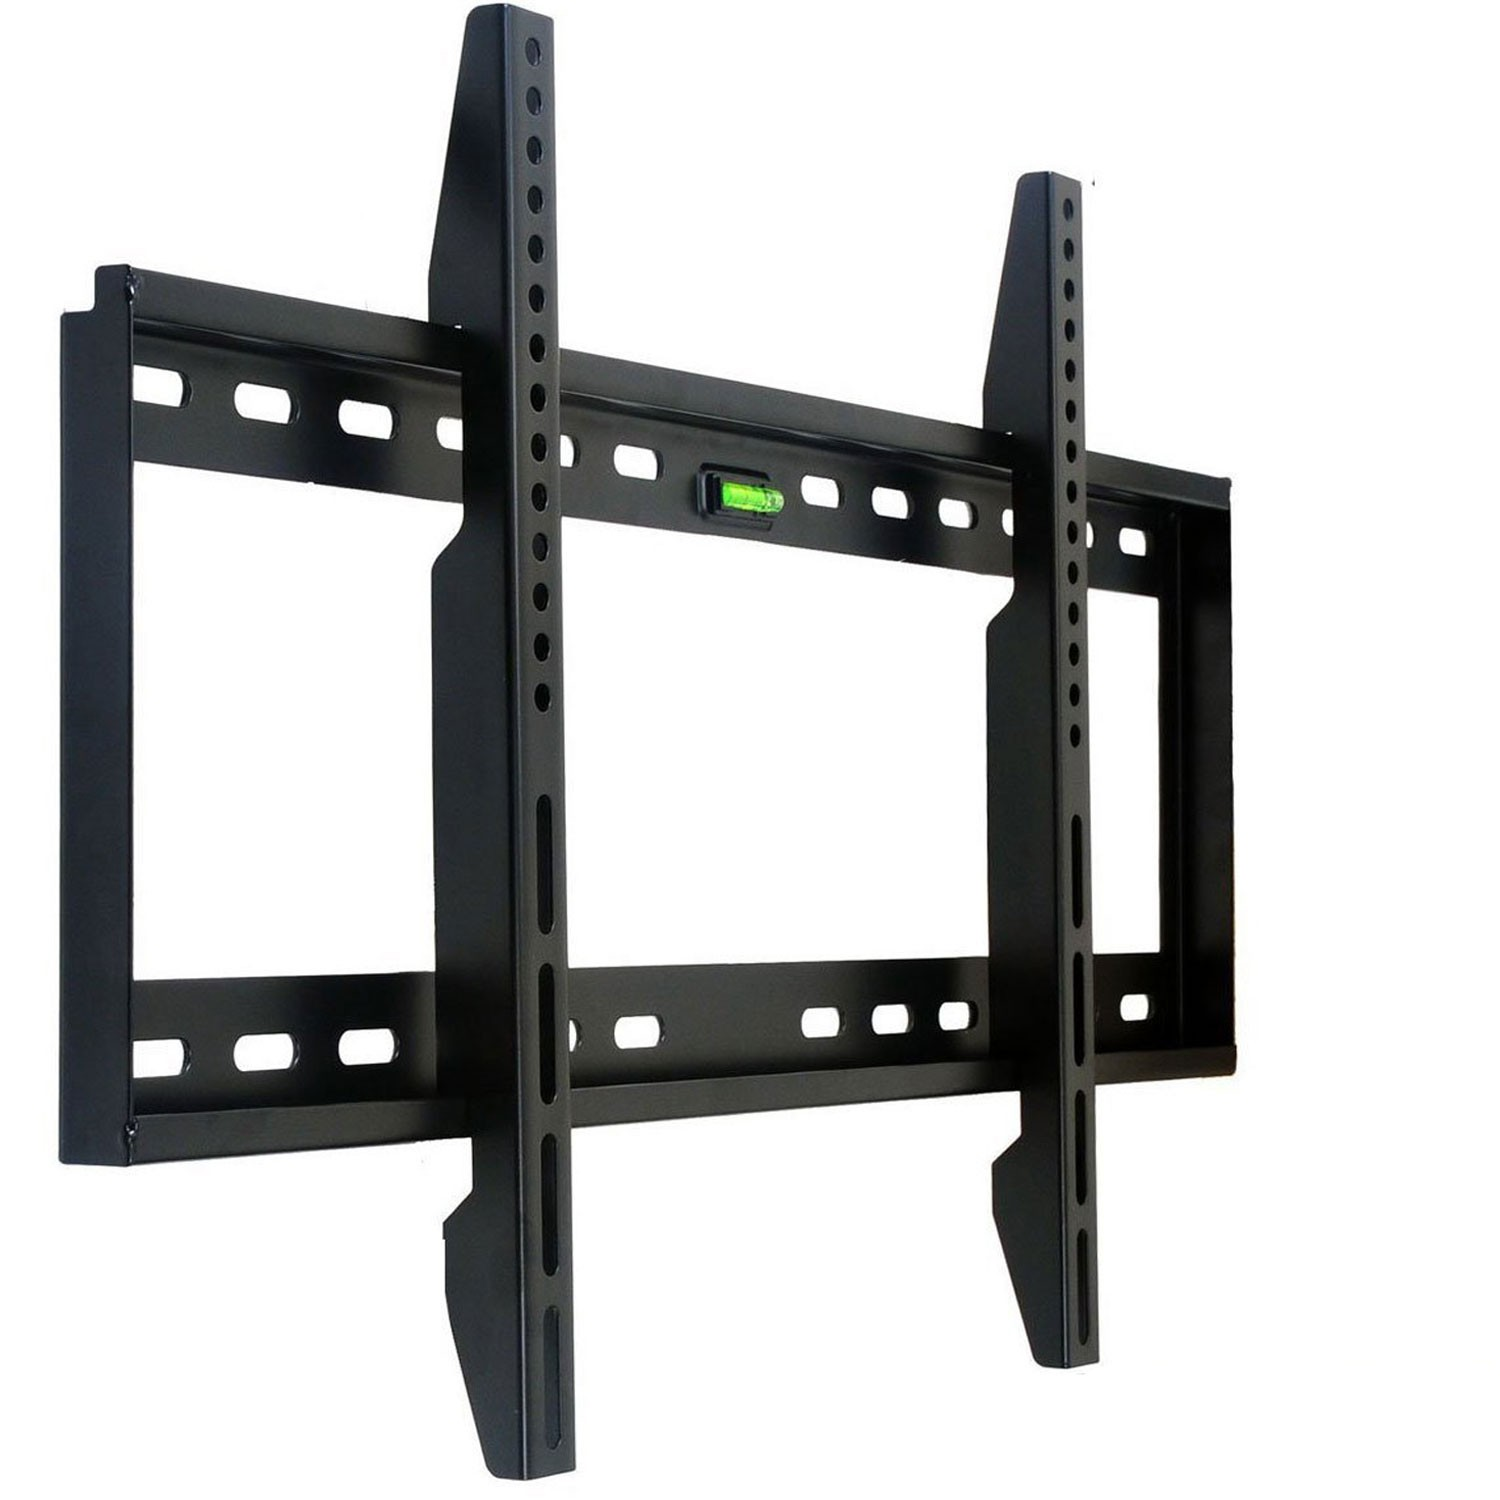 VideoSecu Low Profile TV Wall Mount for LG Panasonic Philips Sharp Sony Toshiba Westinghouse 32 39 40 42 43 46 47 48 50 55 60 65 inch LED LCD Plasma Flat Panel Screen HDTV Display Heavy Duty W46